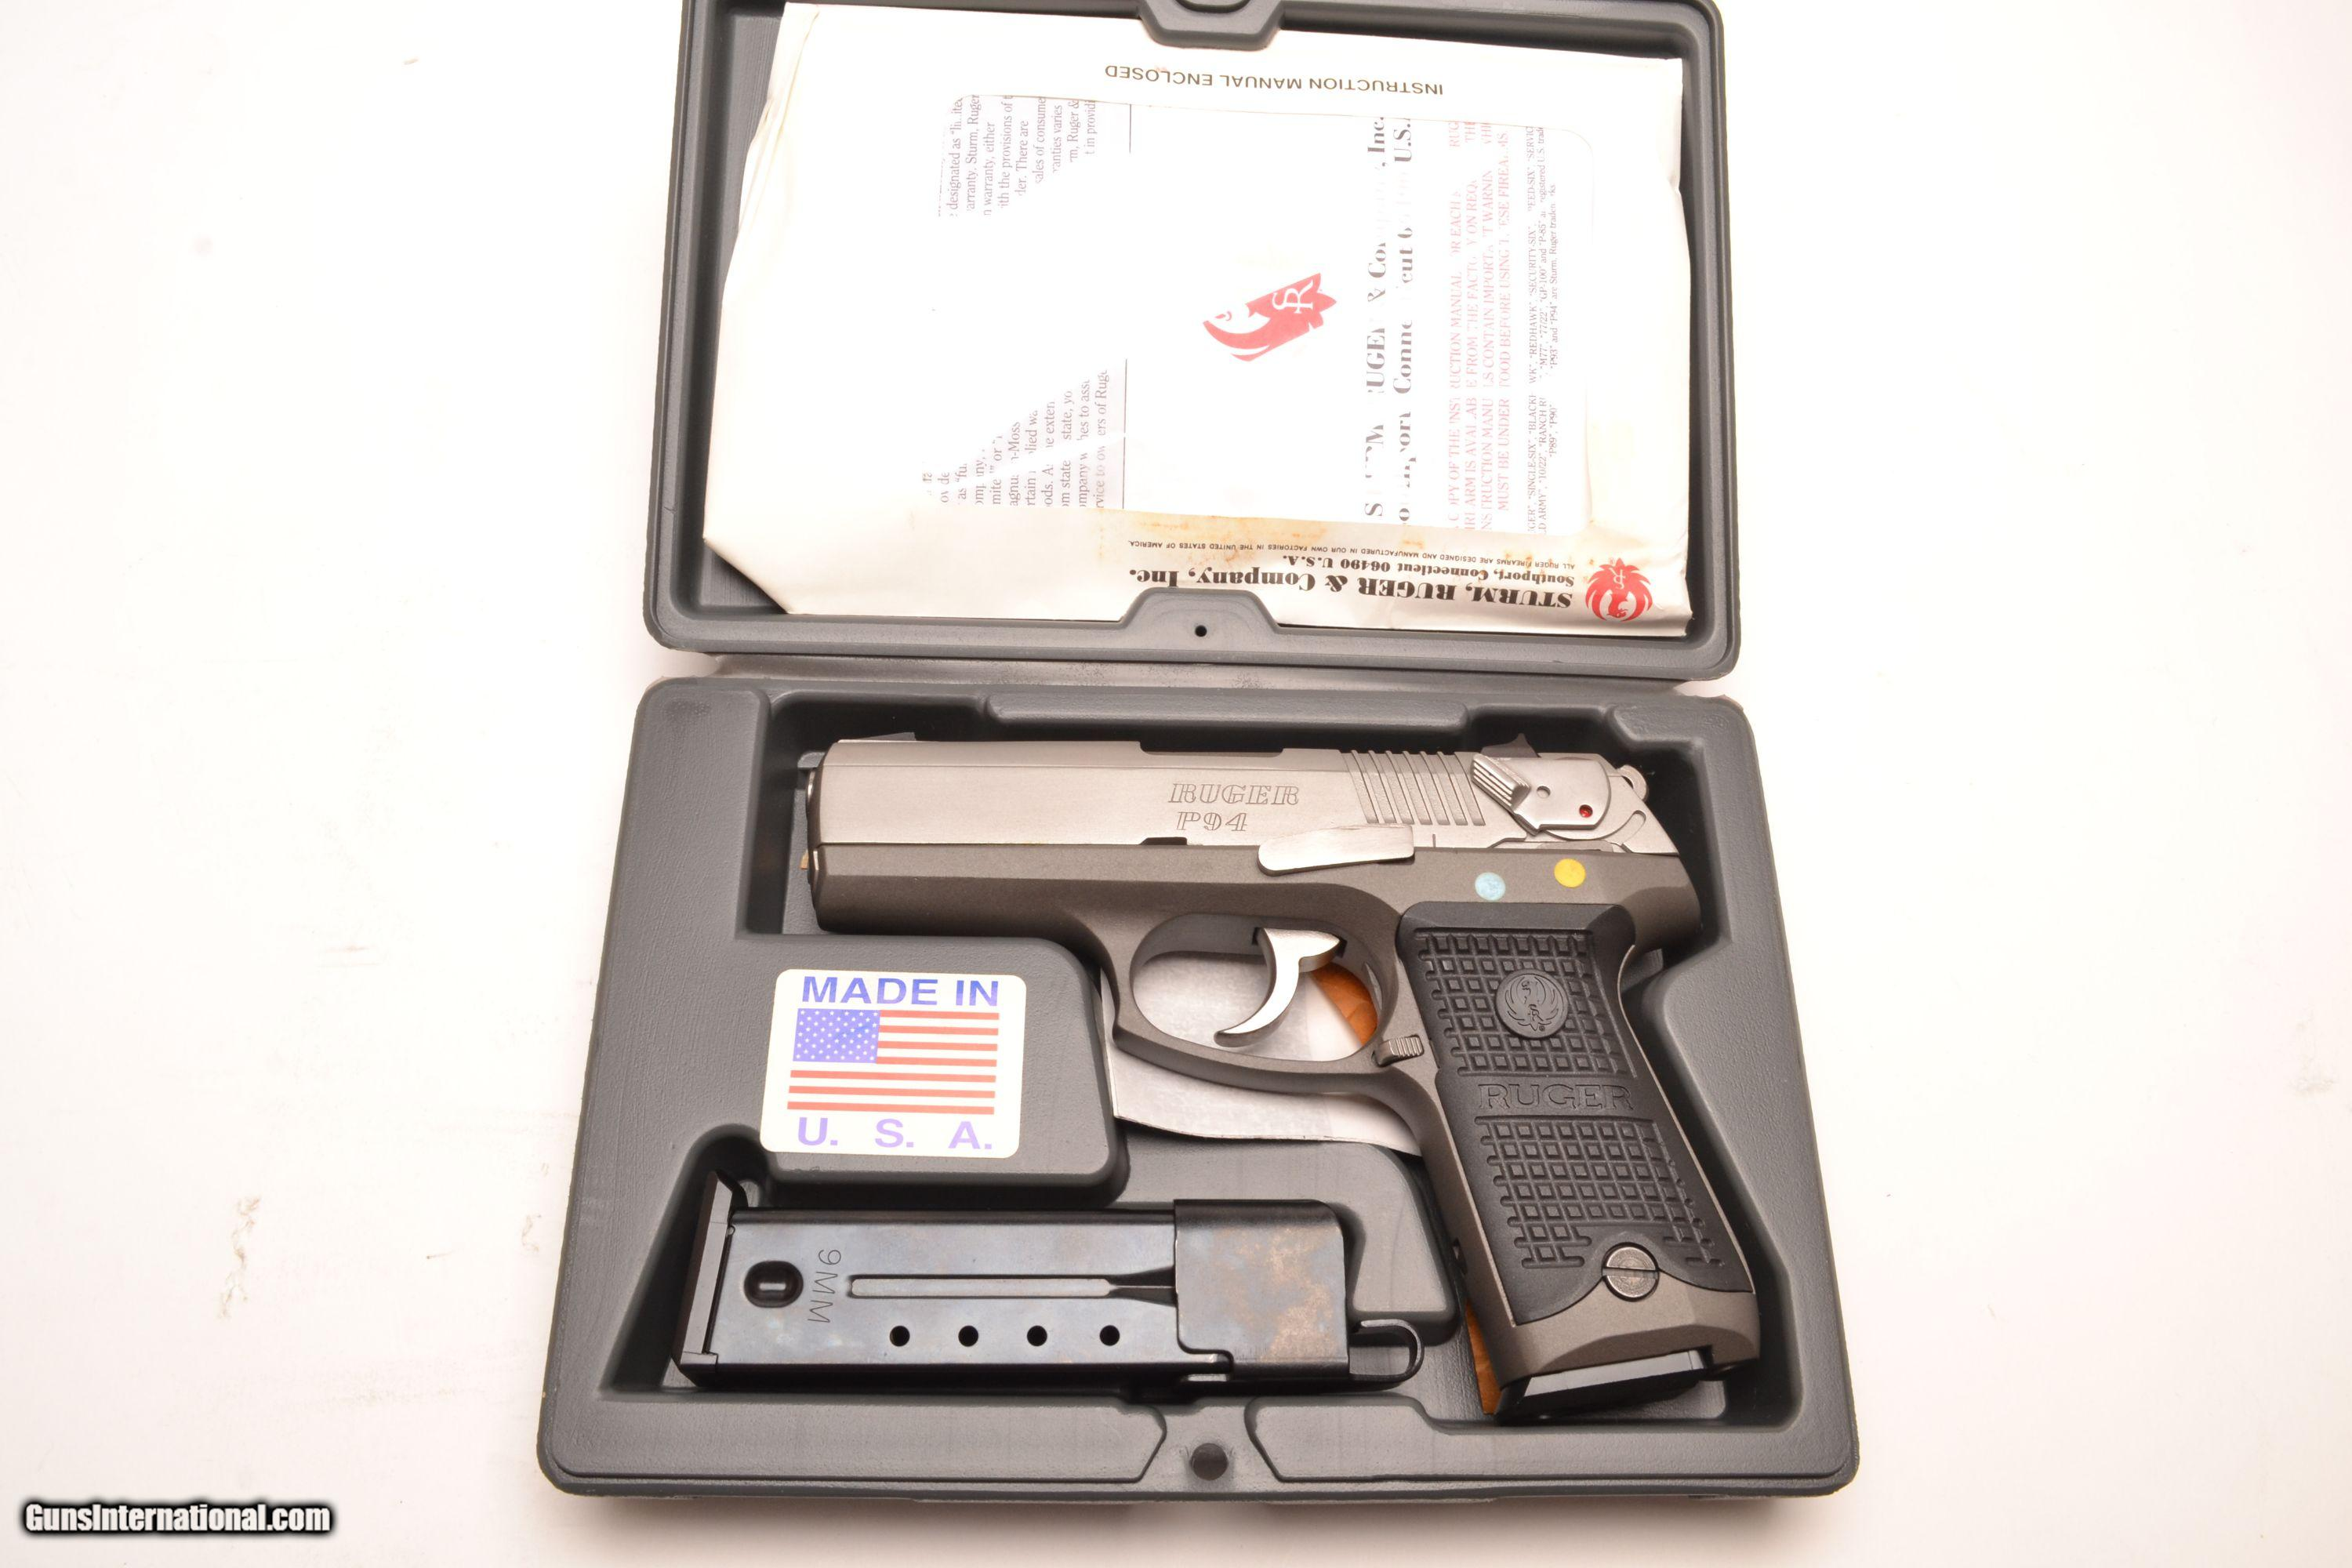 Sturm Ruger P94 Stainless Steel 9mm for sale